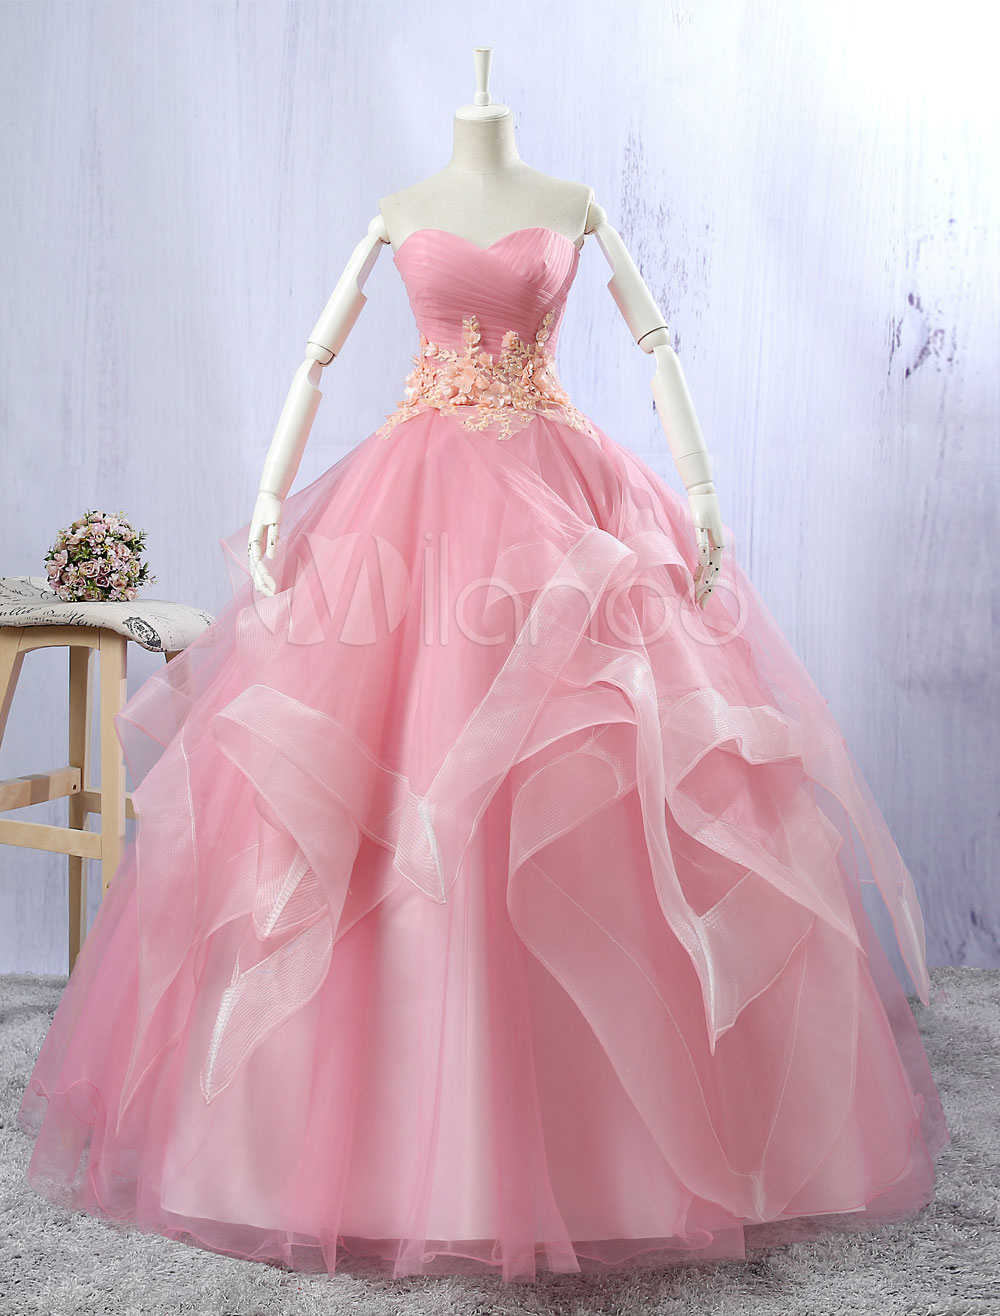 Tulle Quinceanera Dresses Lace Flowers Beading Light Pink Sleeveless Sweatheart Strapless Organza Floor Length Princess Pageant Dresses